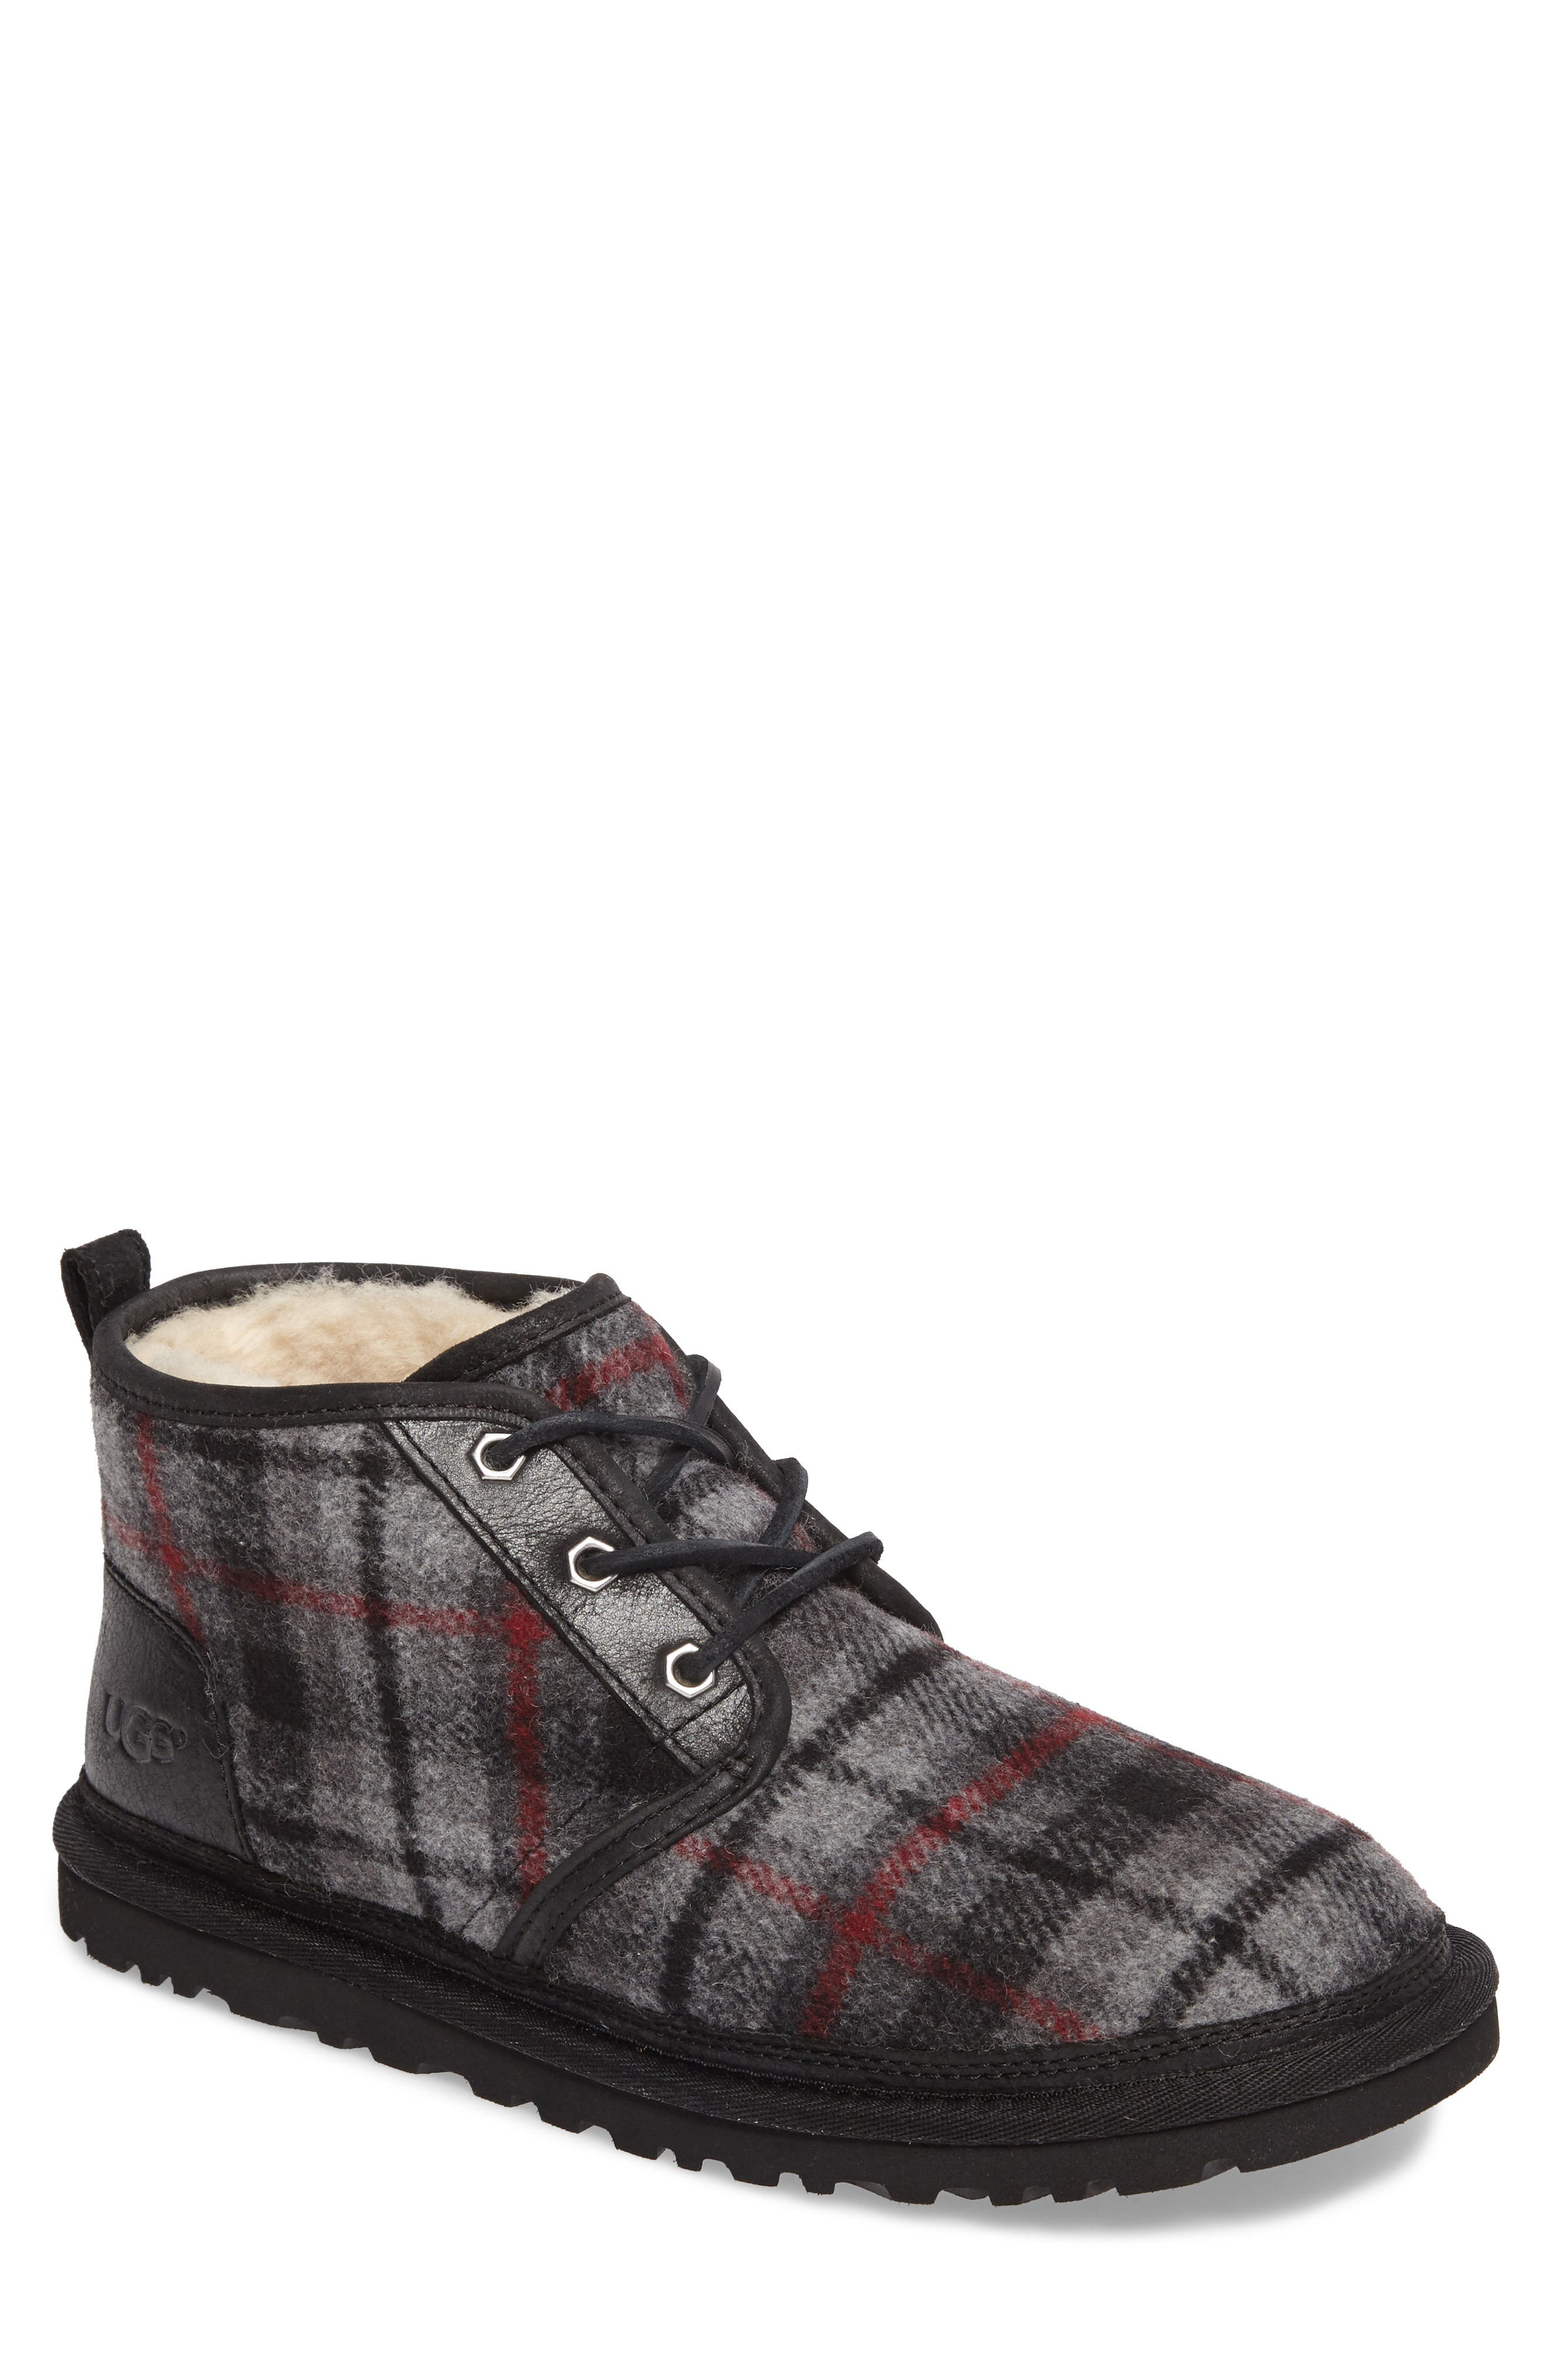 Neumel Chukka Boot,                             Main thumbnail 1, color,                             Tartan Plaid